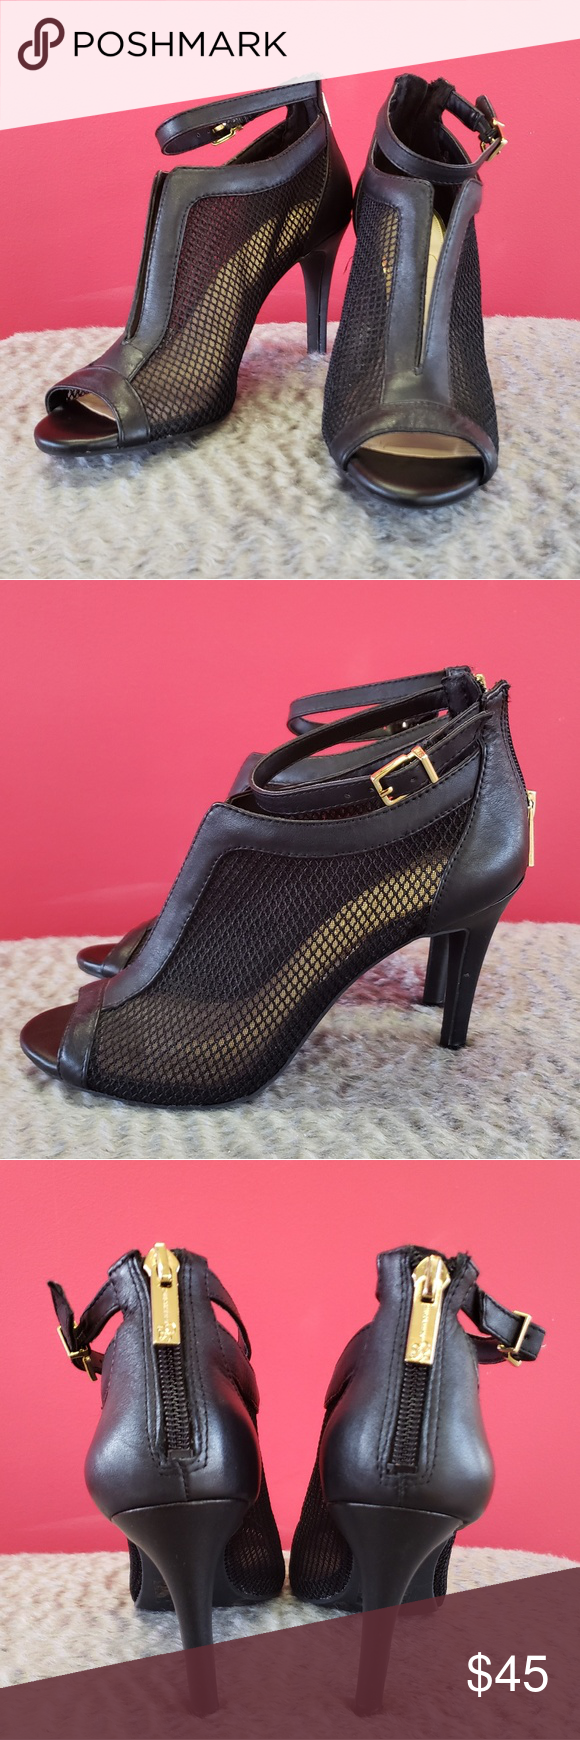 Jessica Simpson Mesh Pump Only Worn Once Like New Plastic Shoe Inserts Included To Maintain Shape Shoes Heels